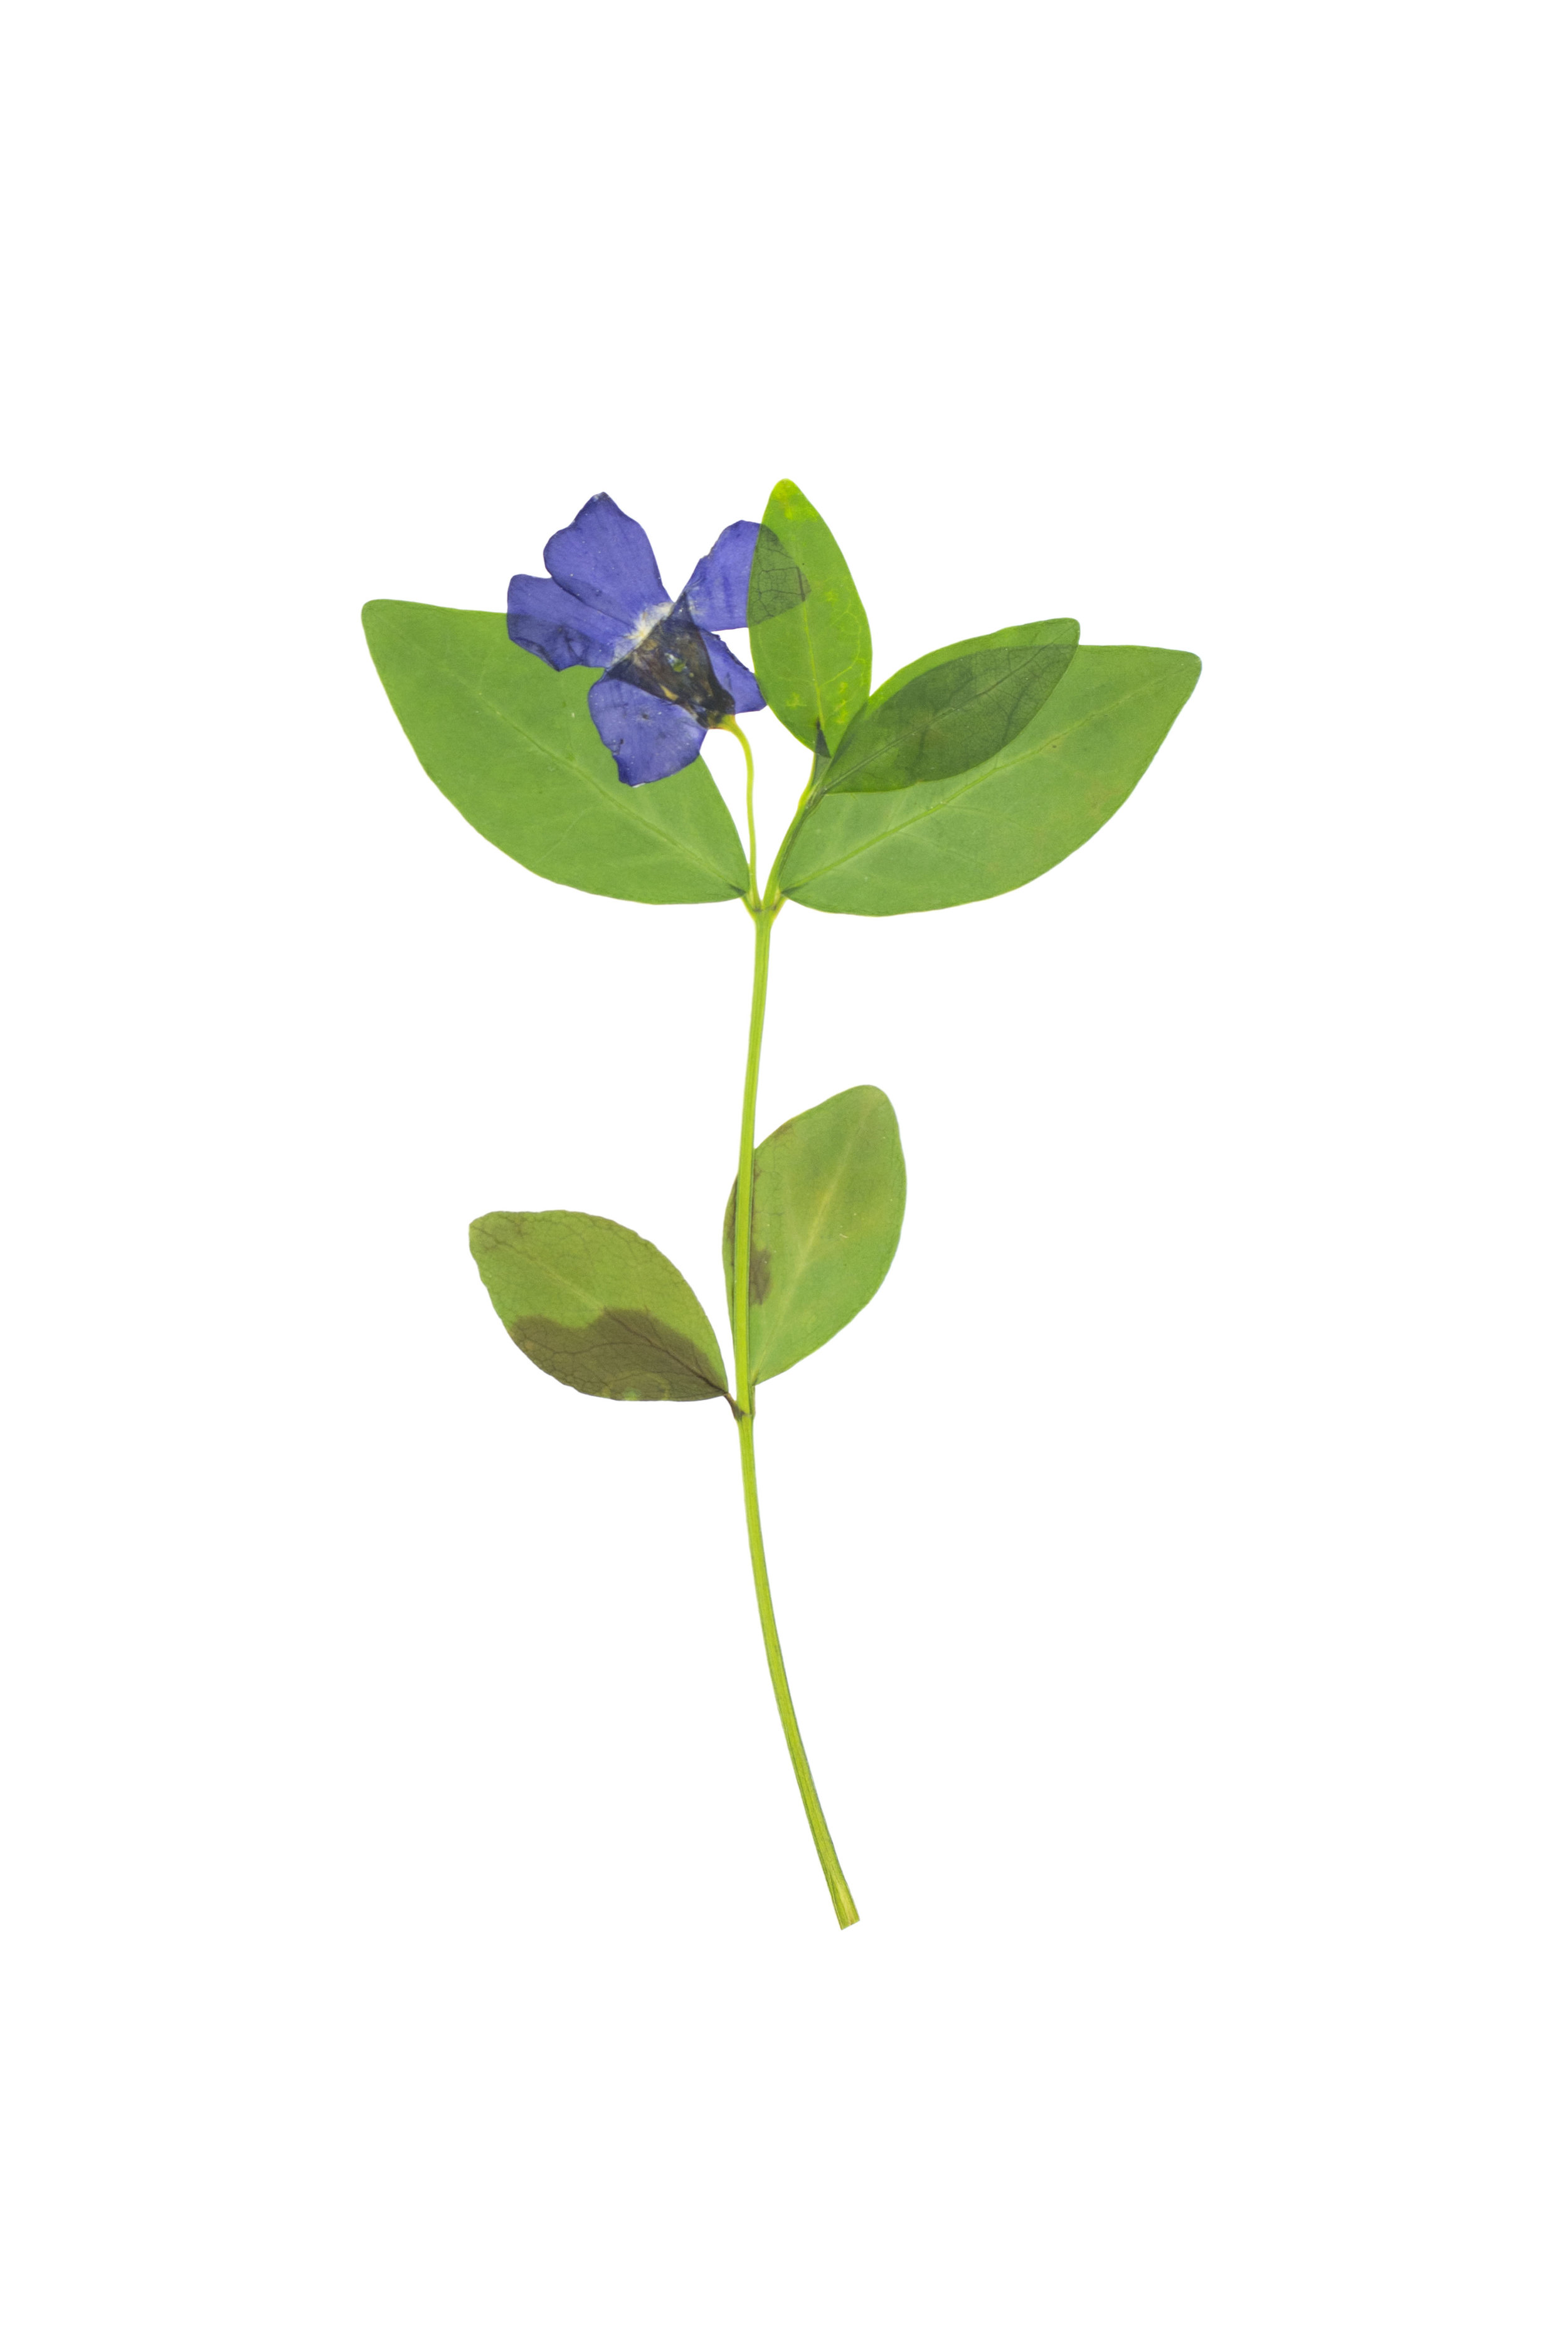 Periwinkle / Vinca minor